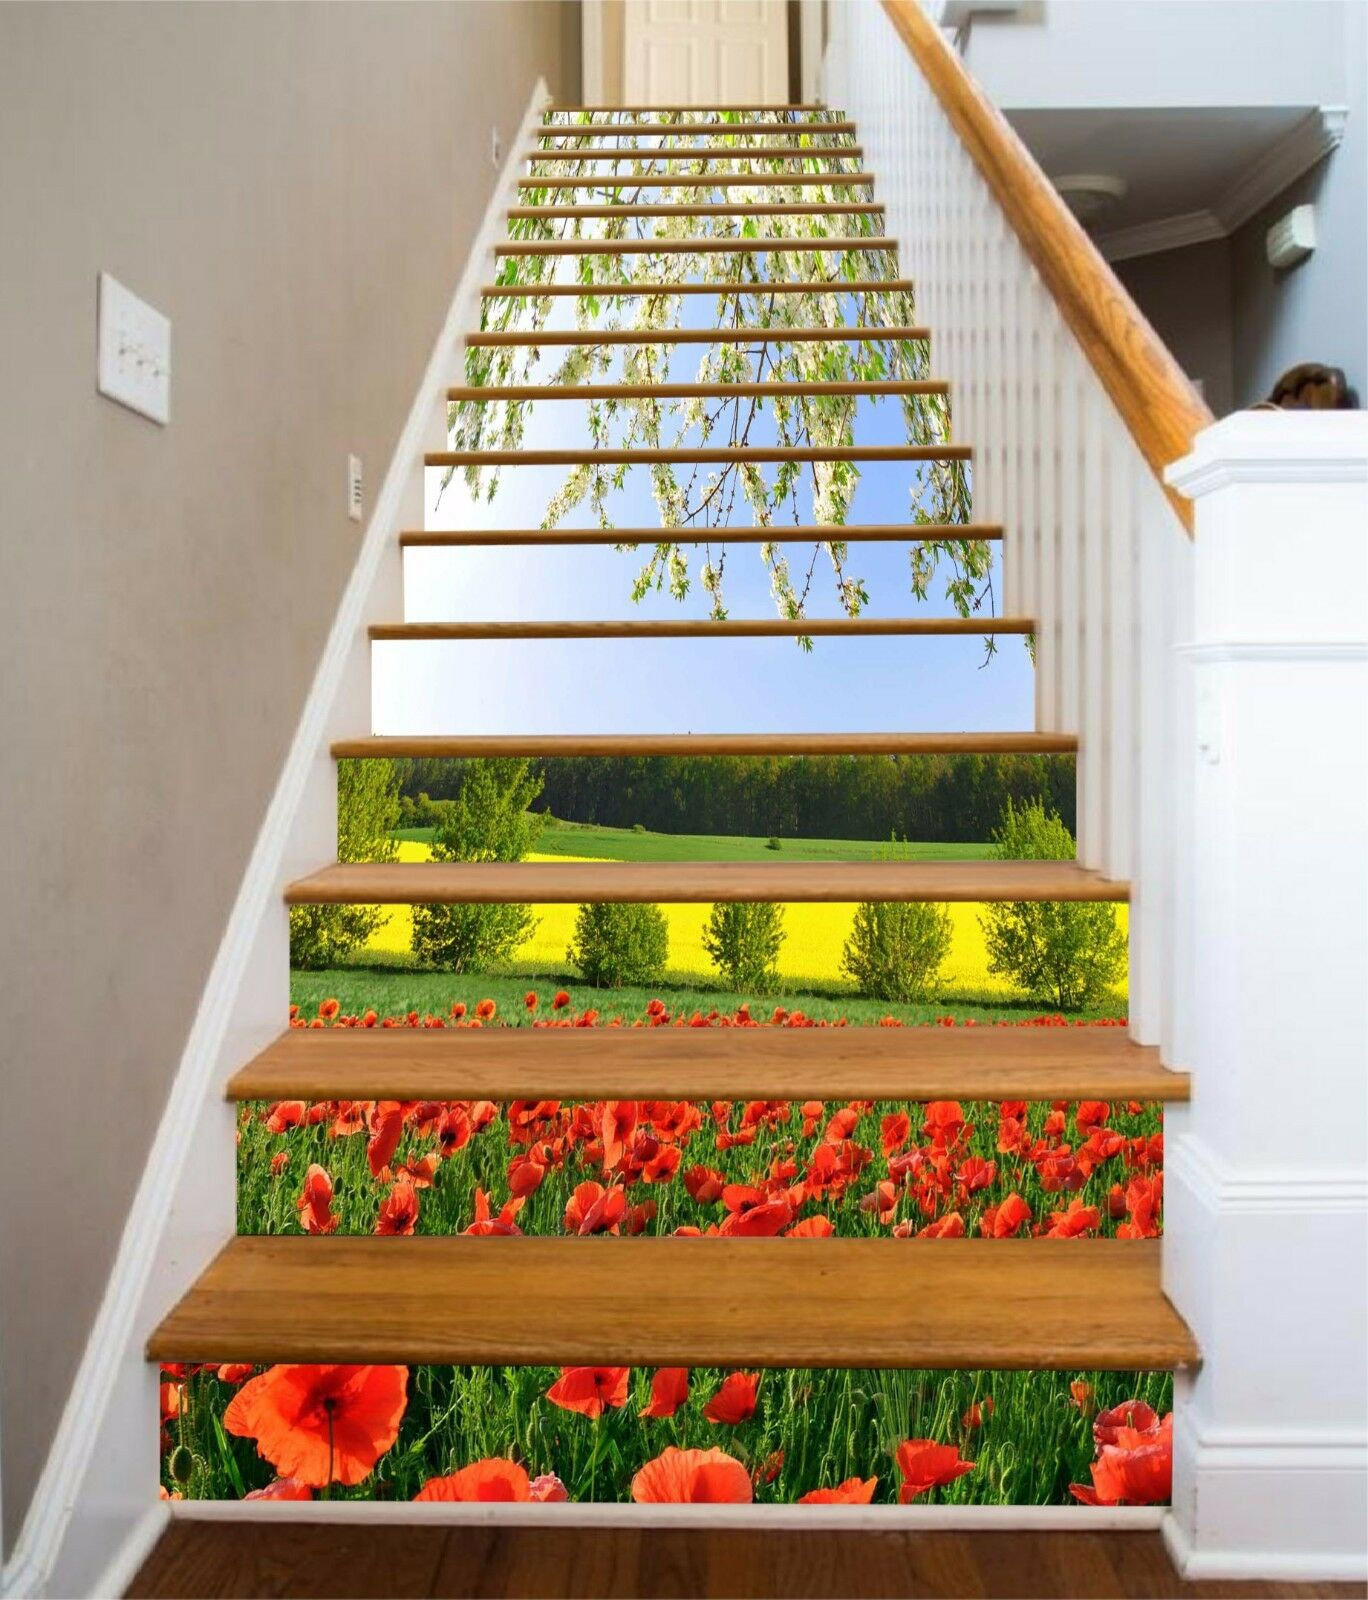 3D Lawn Flowers 310 Stair Risers Dekoration Foto Mural Vinyl Decal Wallpaper UK